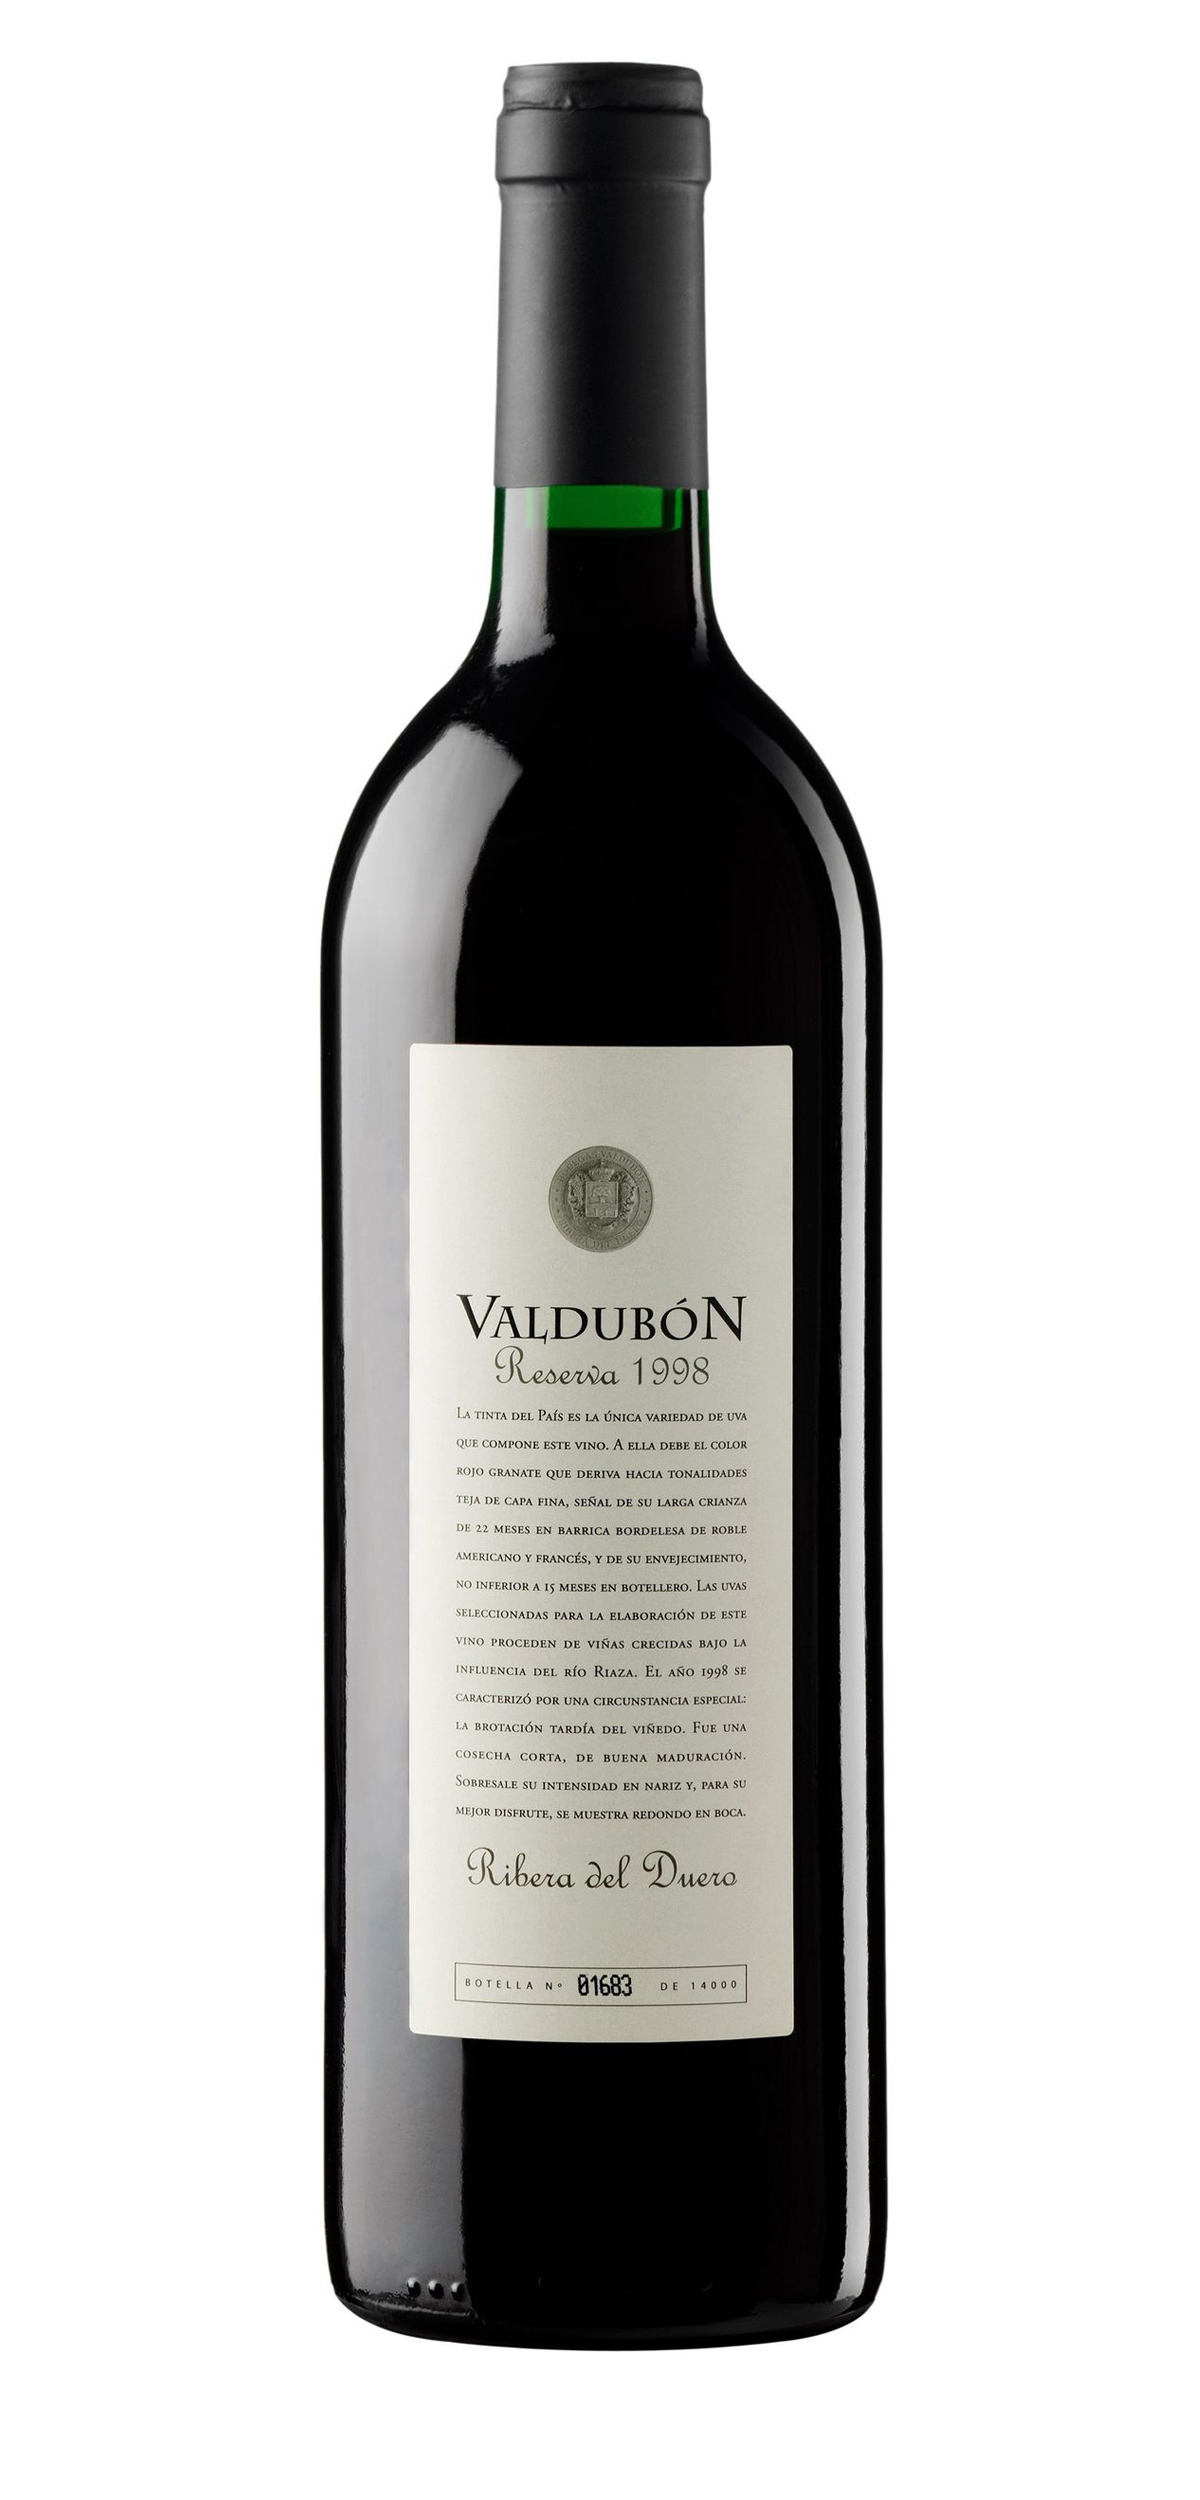 Valdubon Reserva wine bottle design